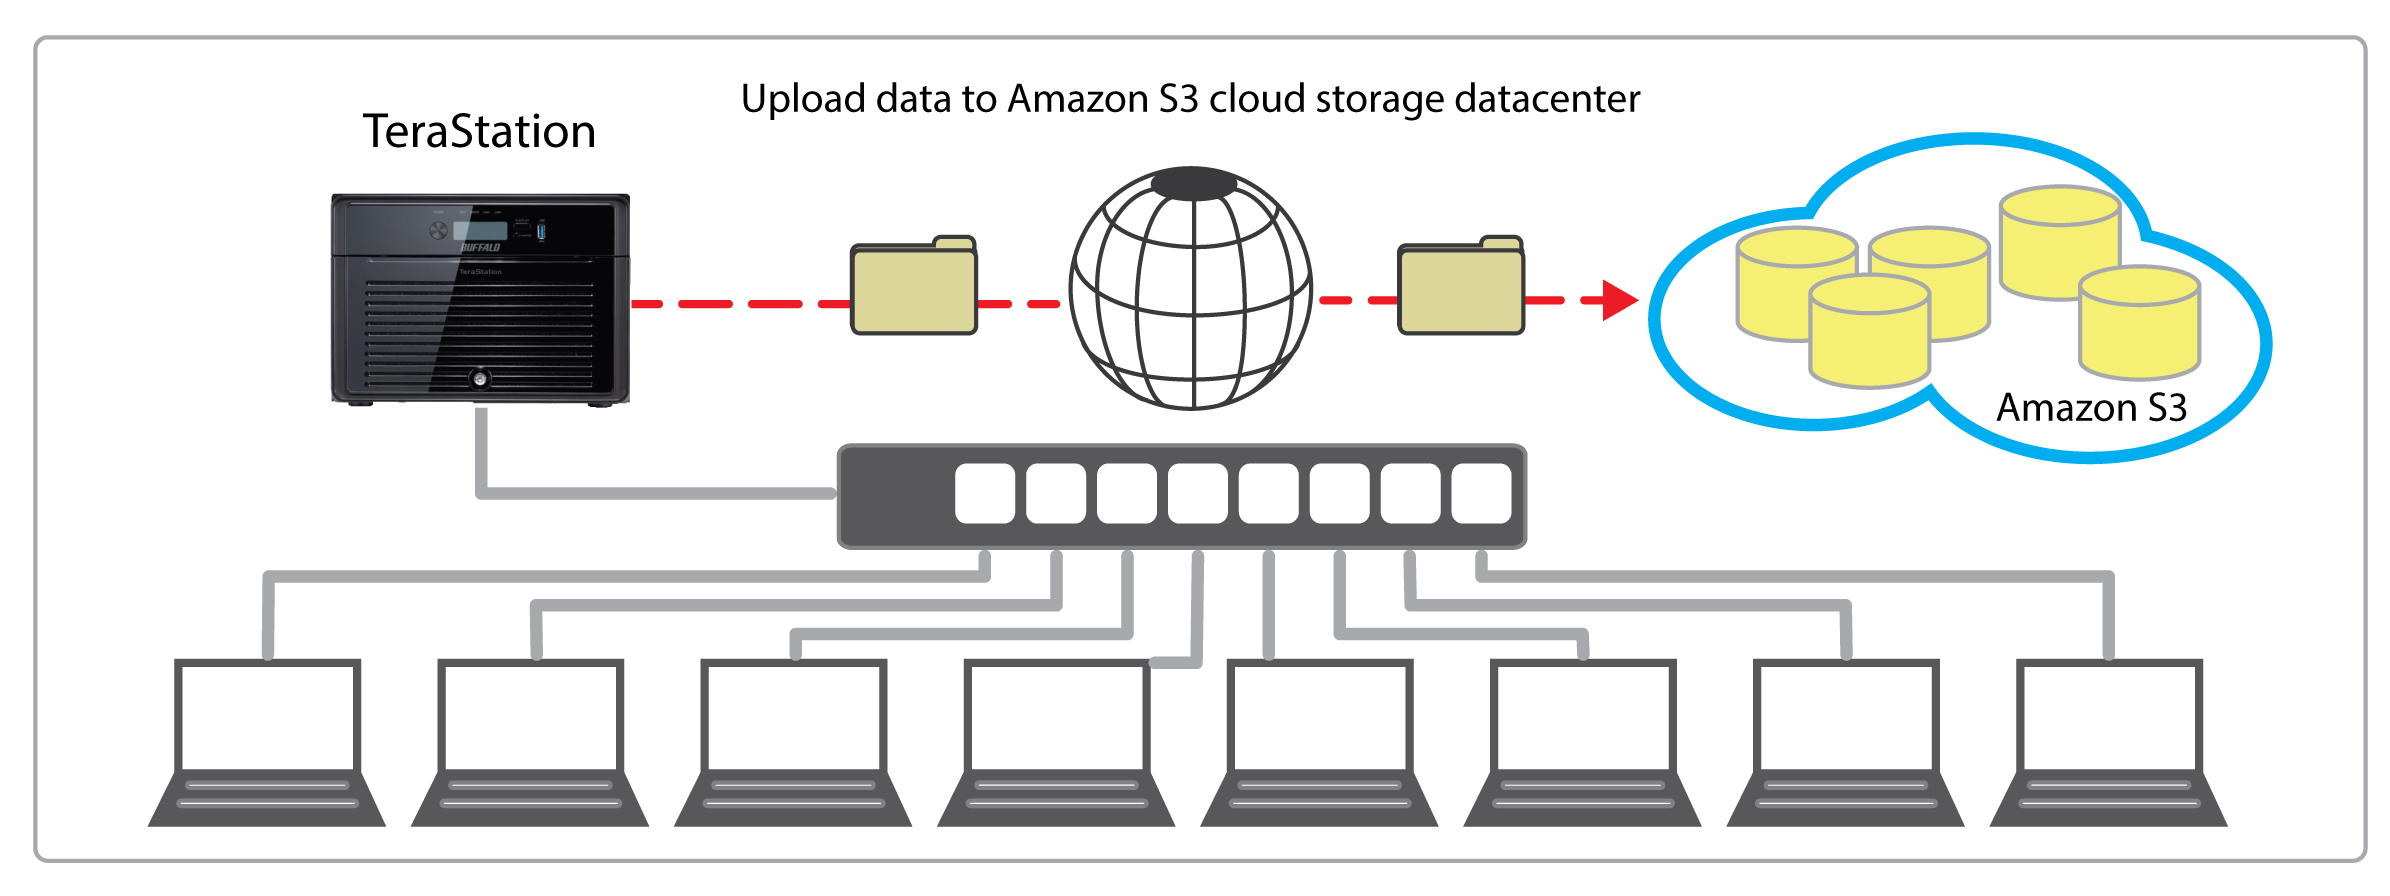 terastation 5000 cloud storage backup